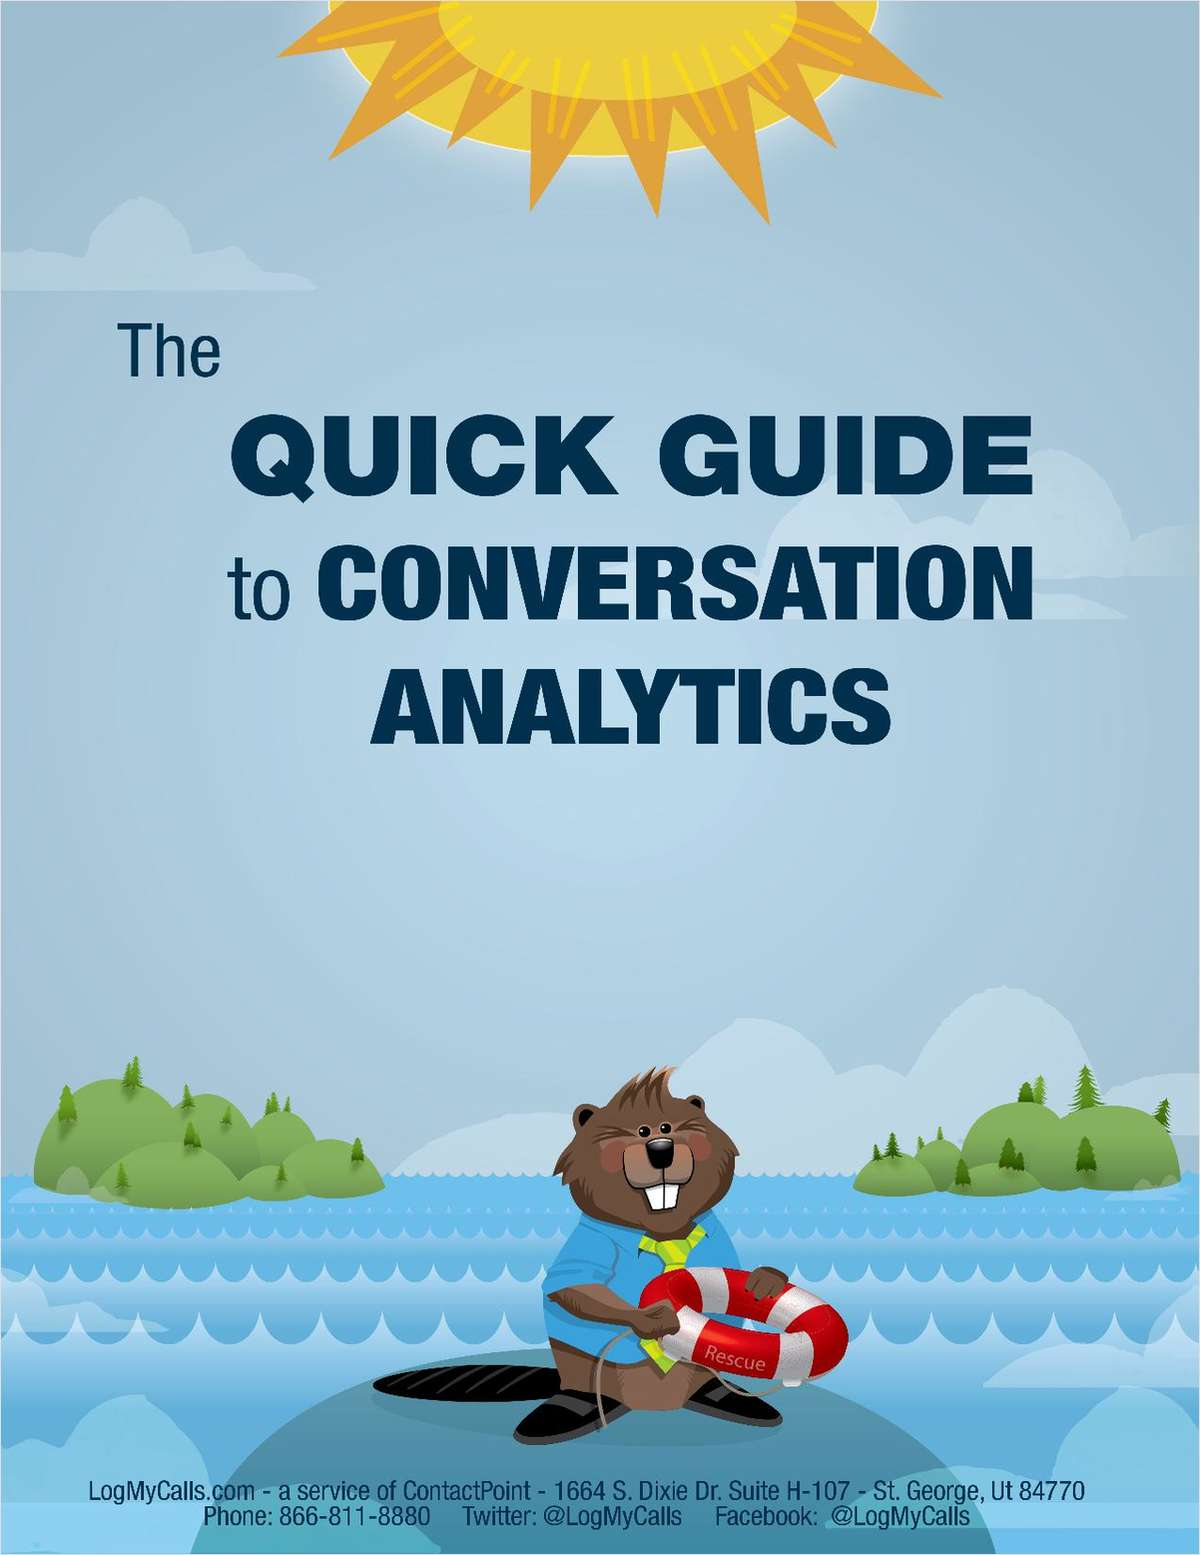 The Quick Guide to Conversation Analytics